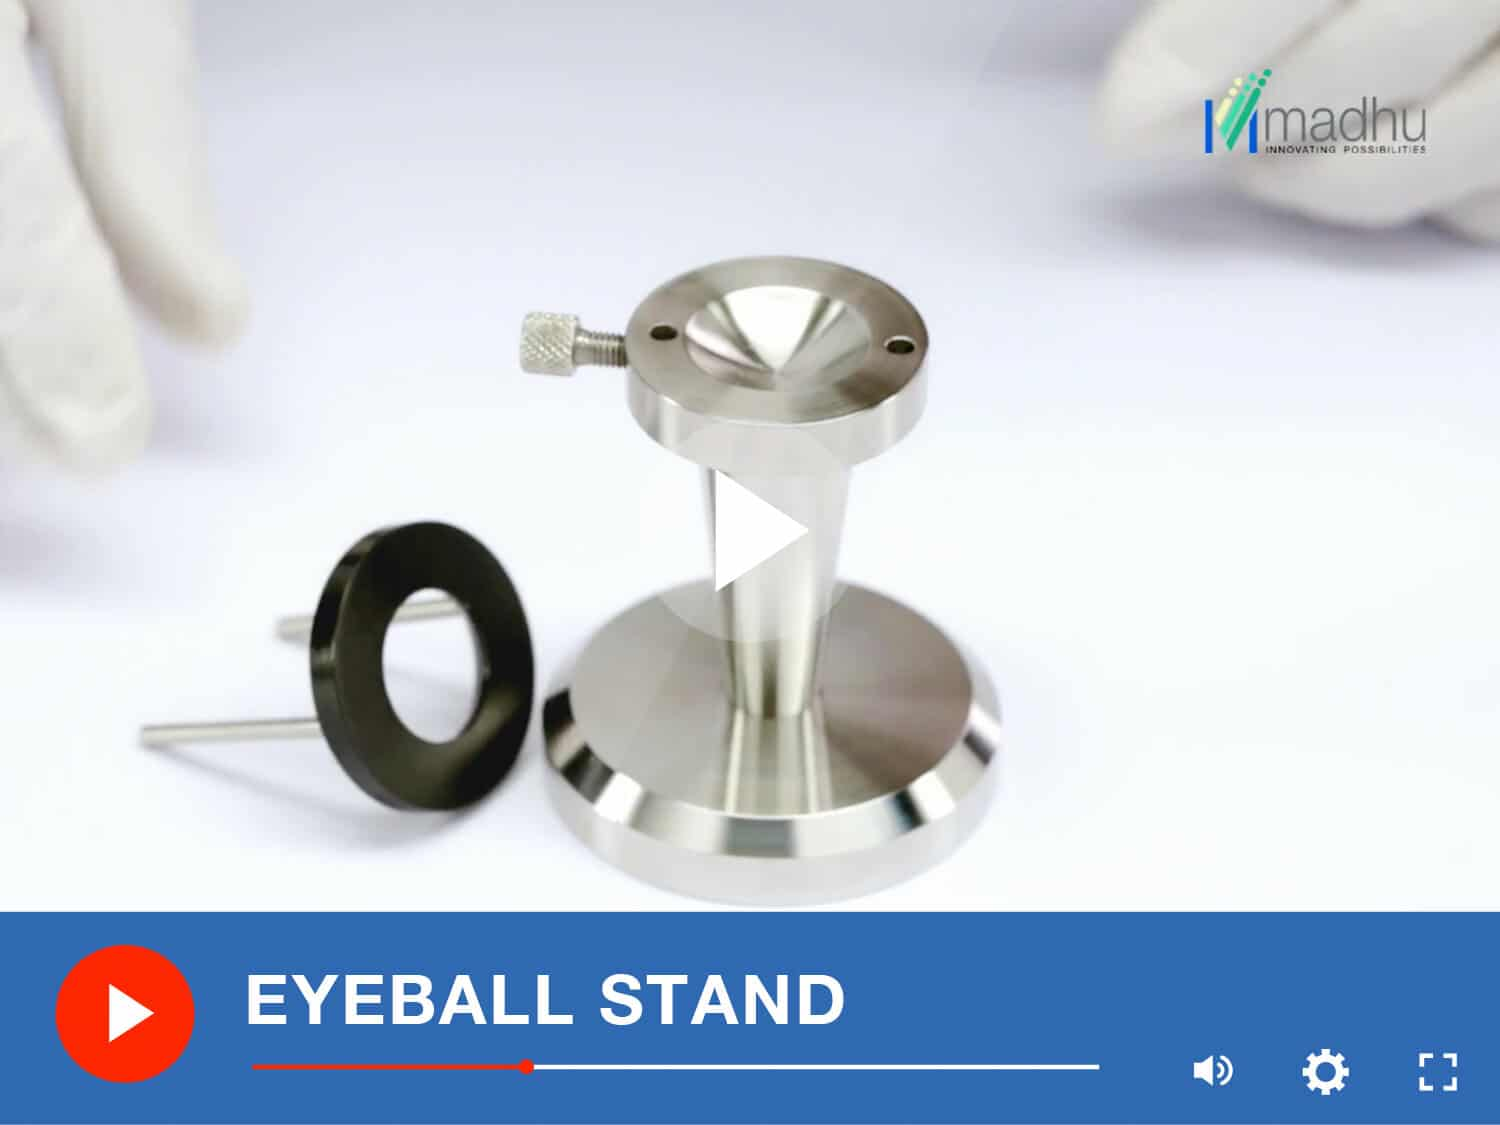 EYEBALL STAND VIDEO